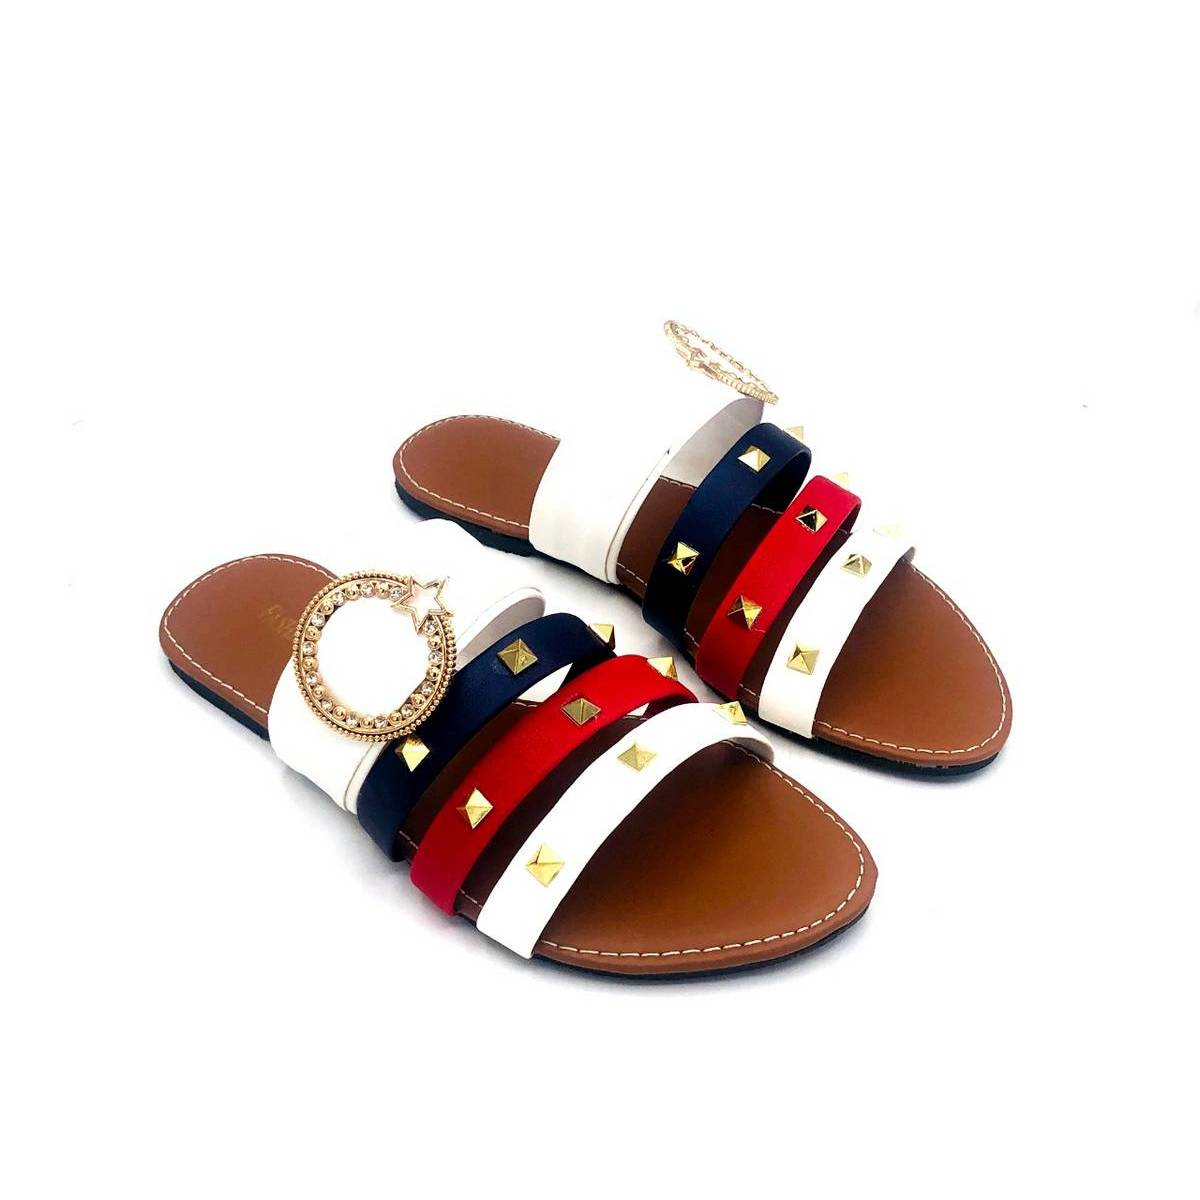 Stylish Multi Flat Indoor And outdoor  Slippers For Women And Ladies/Women Stylish Shoes/Softly Slippers For Women